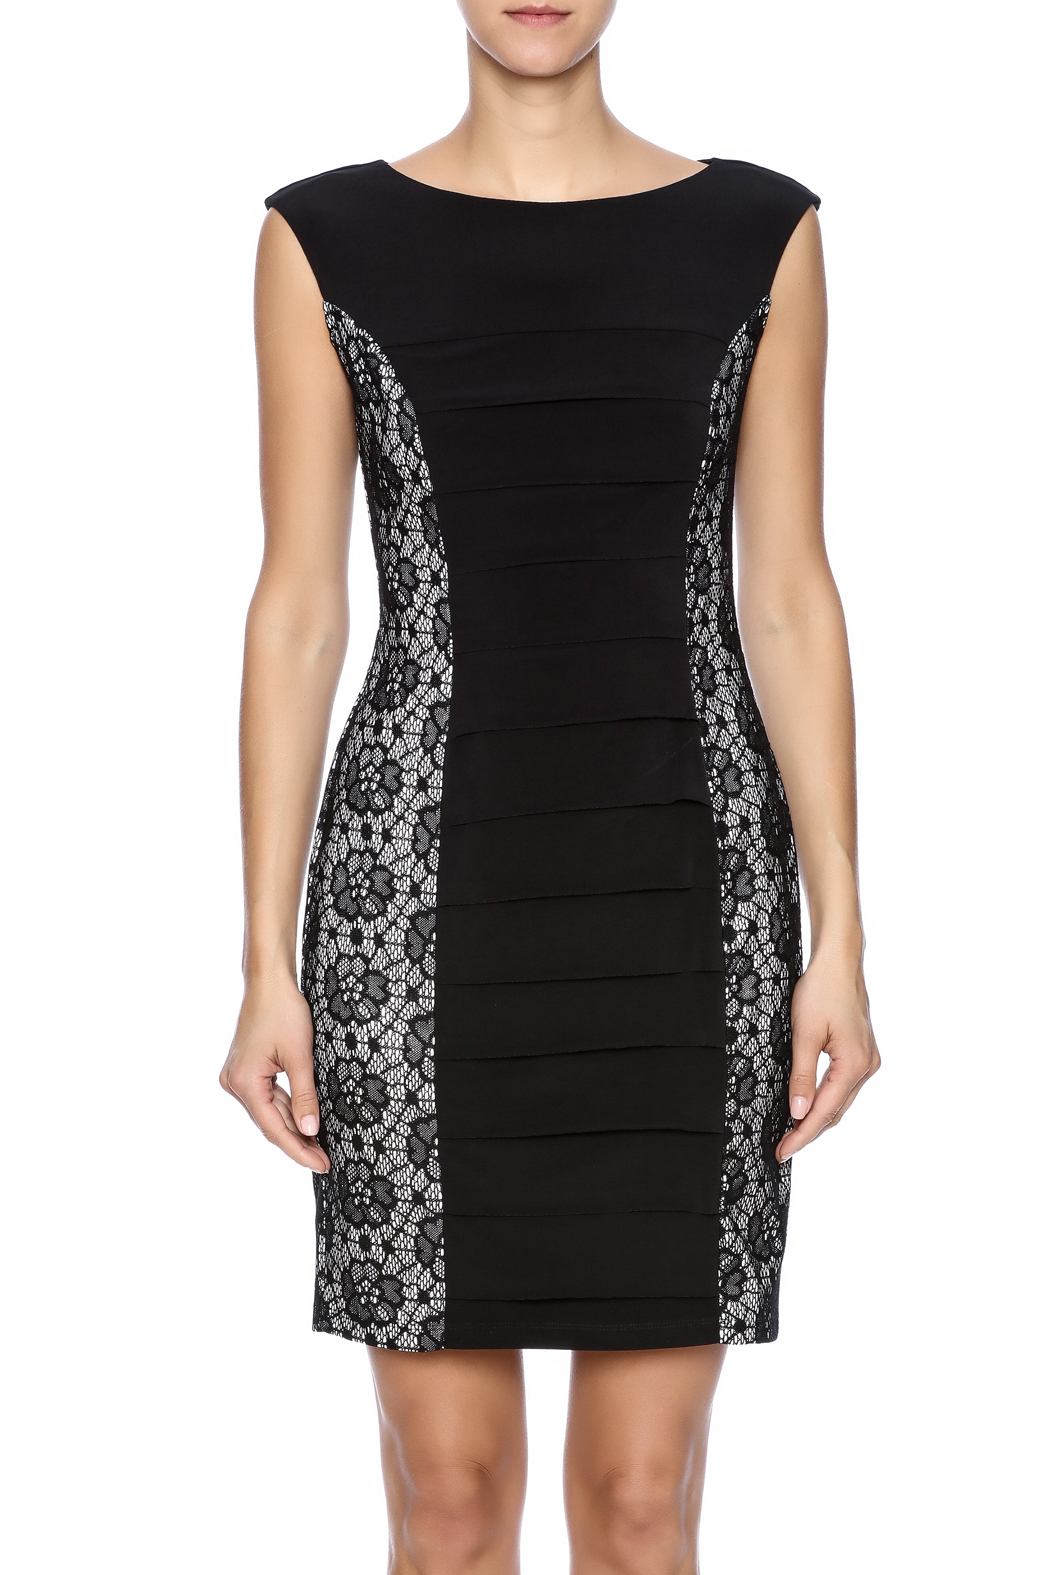 Enfocus Studio Bodycon Dress - Side Cropped Image